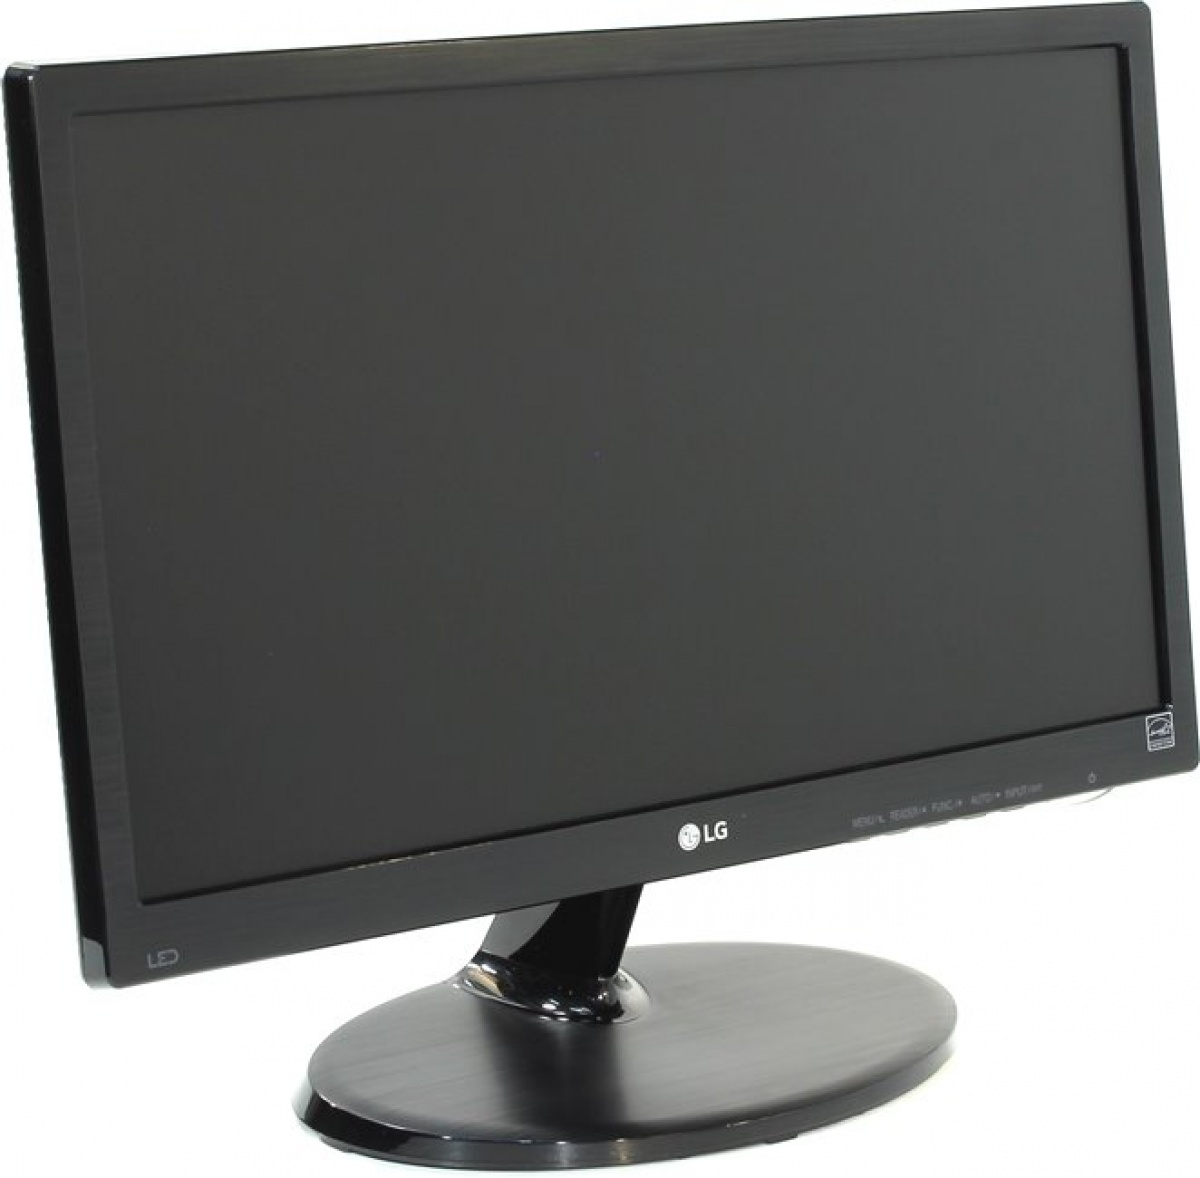 Monitor LED 19M38A-B, 16:9, 18.5 inch, 5 ms, negru